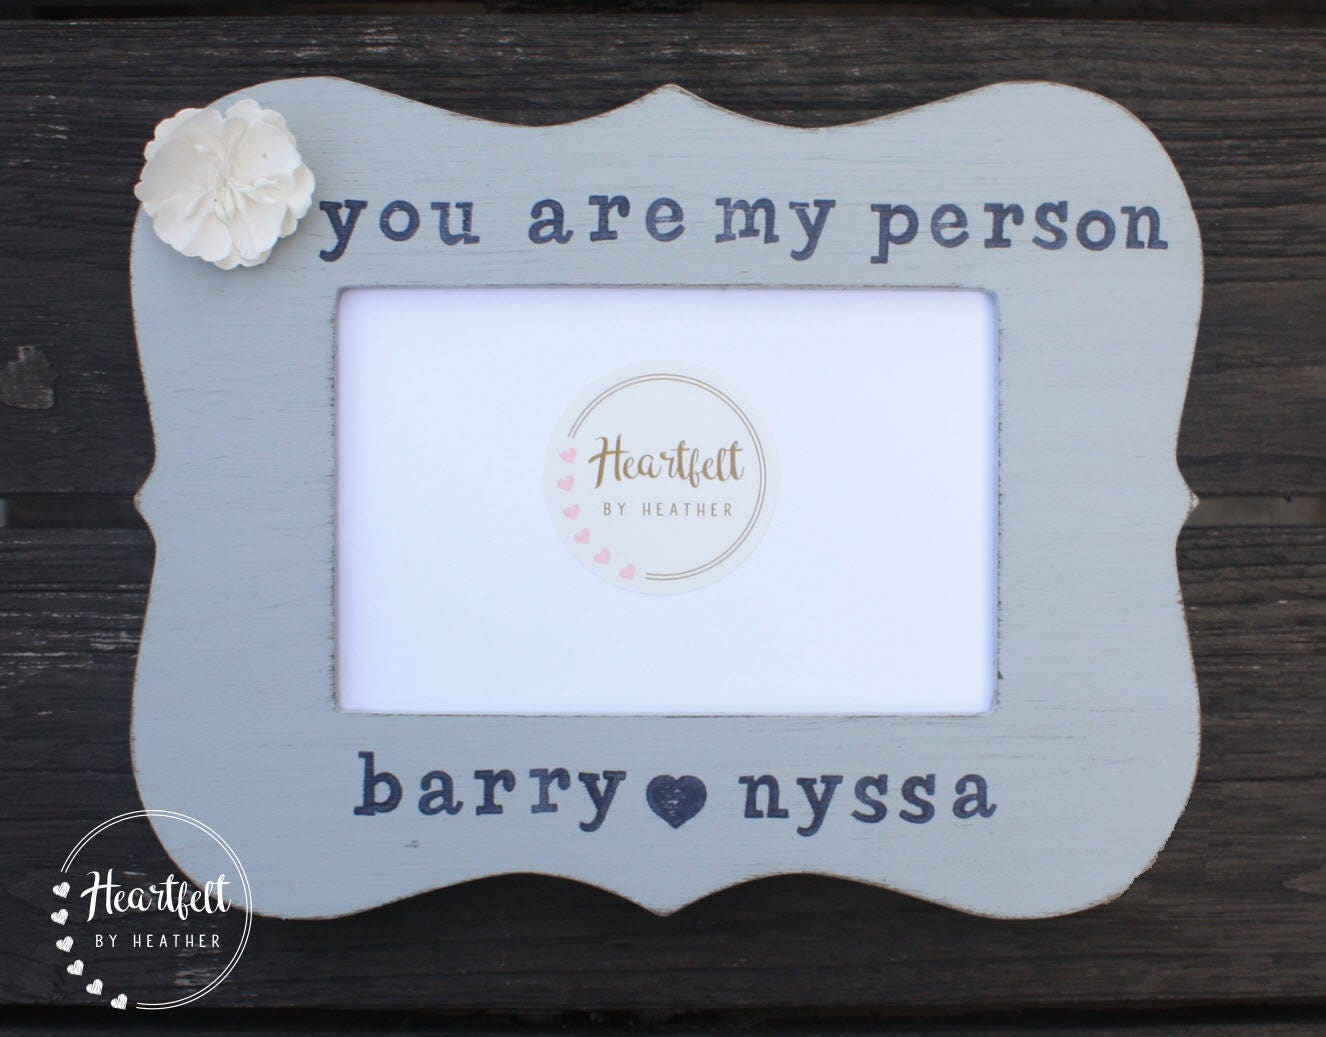 Personalized You Are My Person Frame - Sentimental Gifts for Her ...